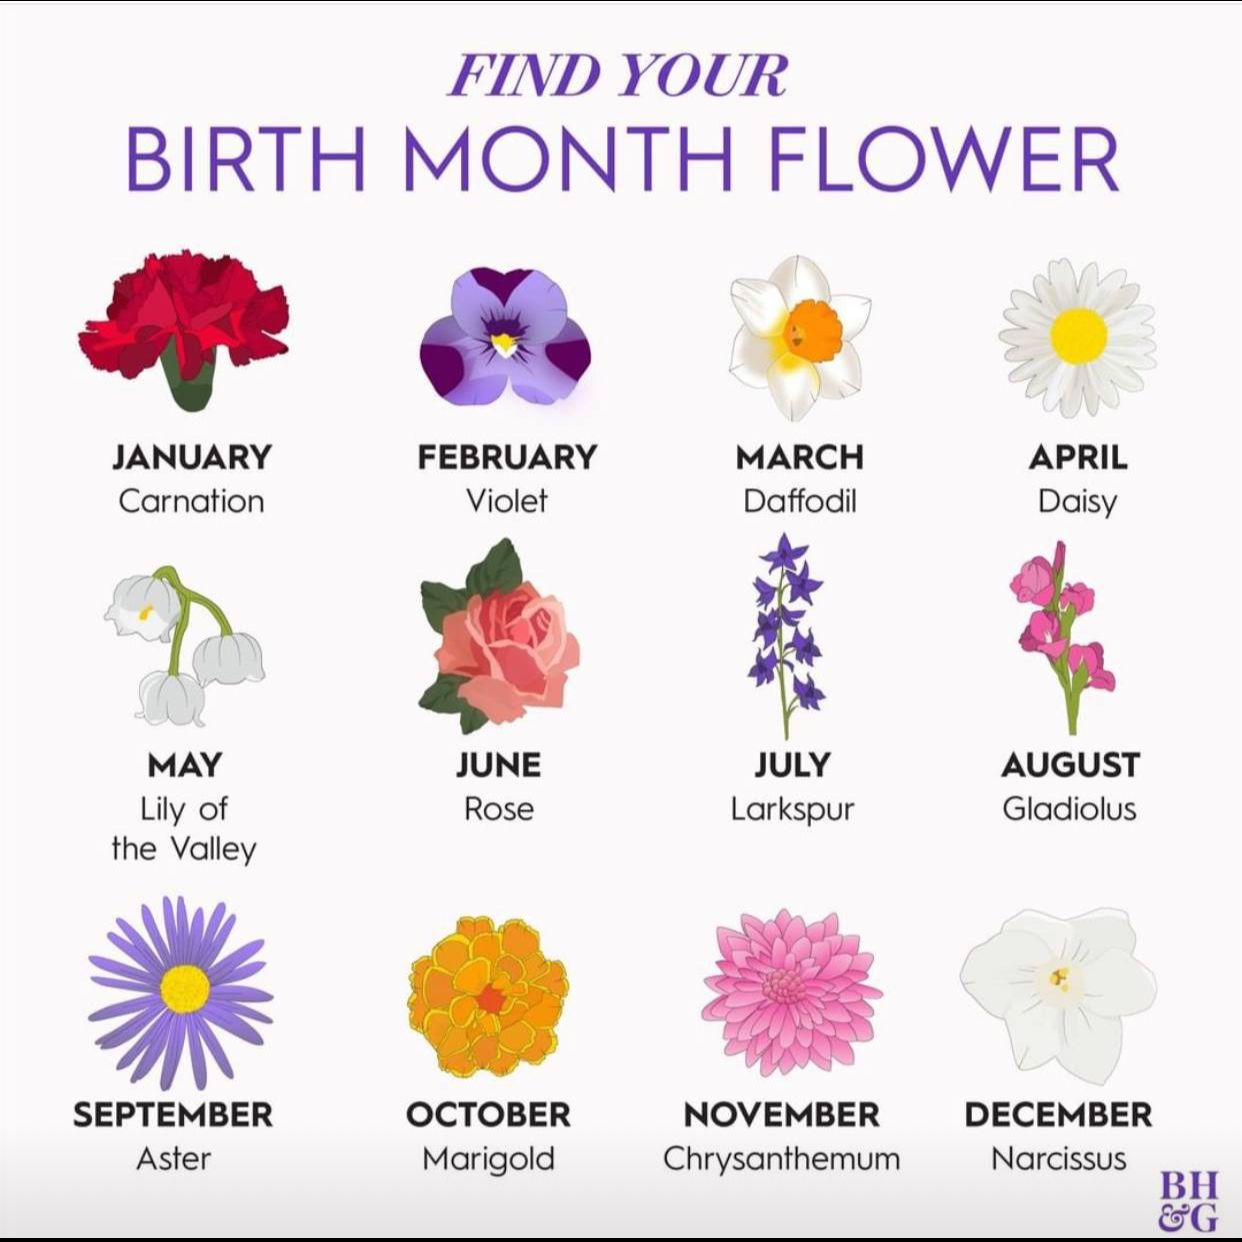 Pin by Haley Hazen on Positive Images Birth month